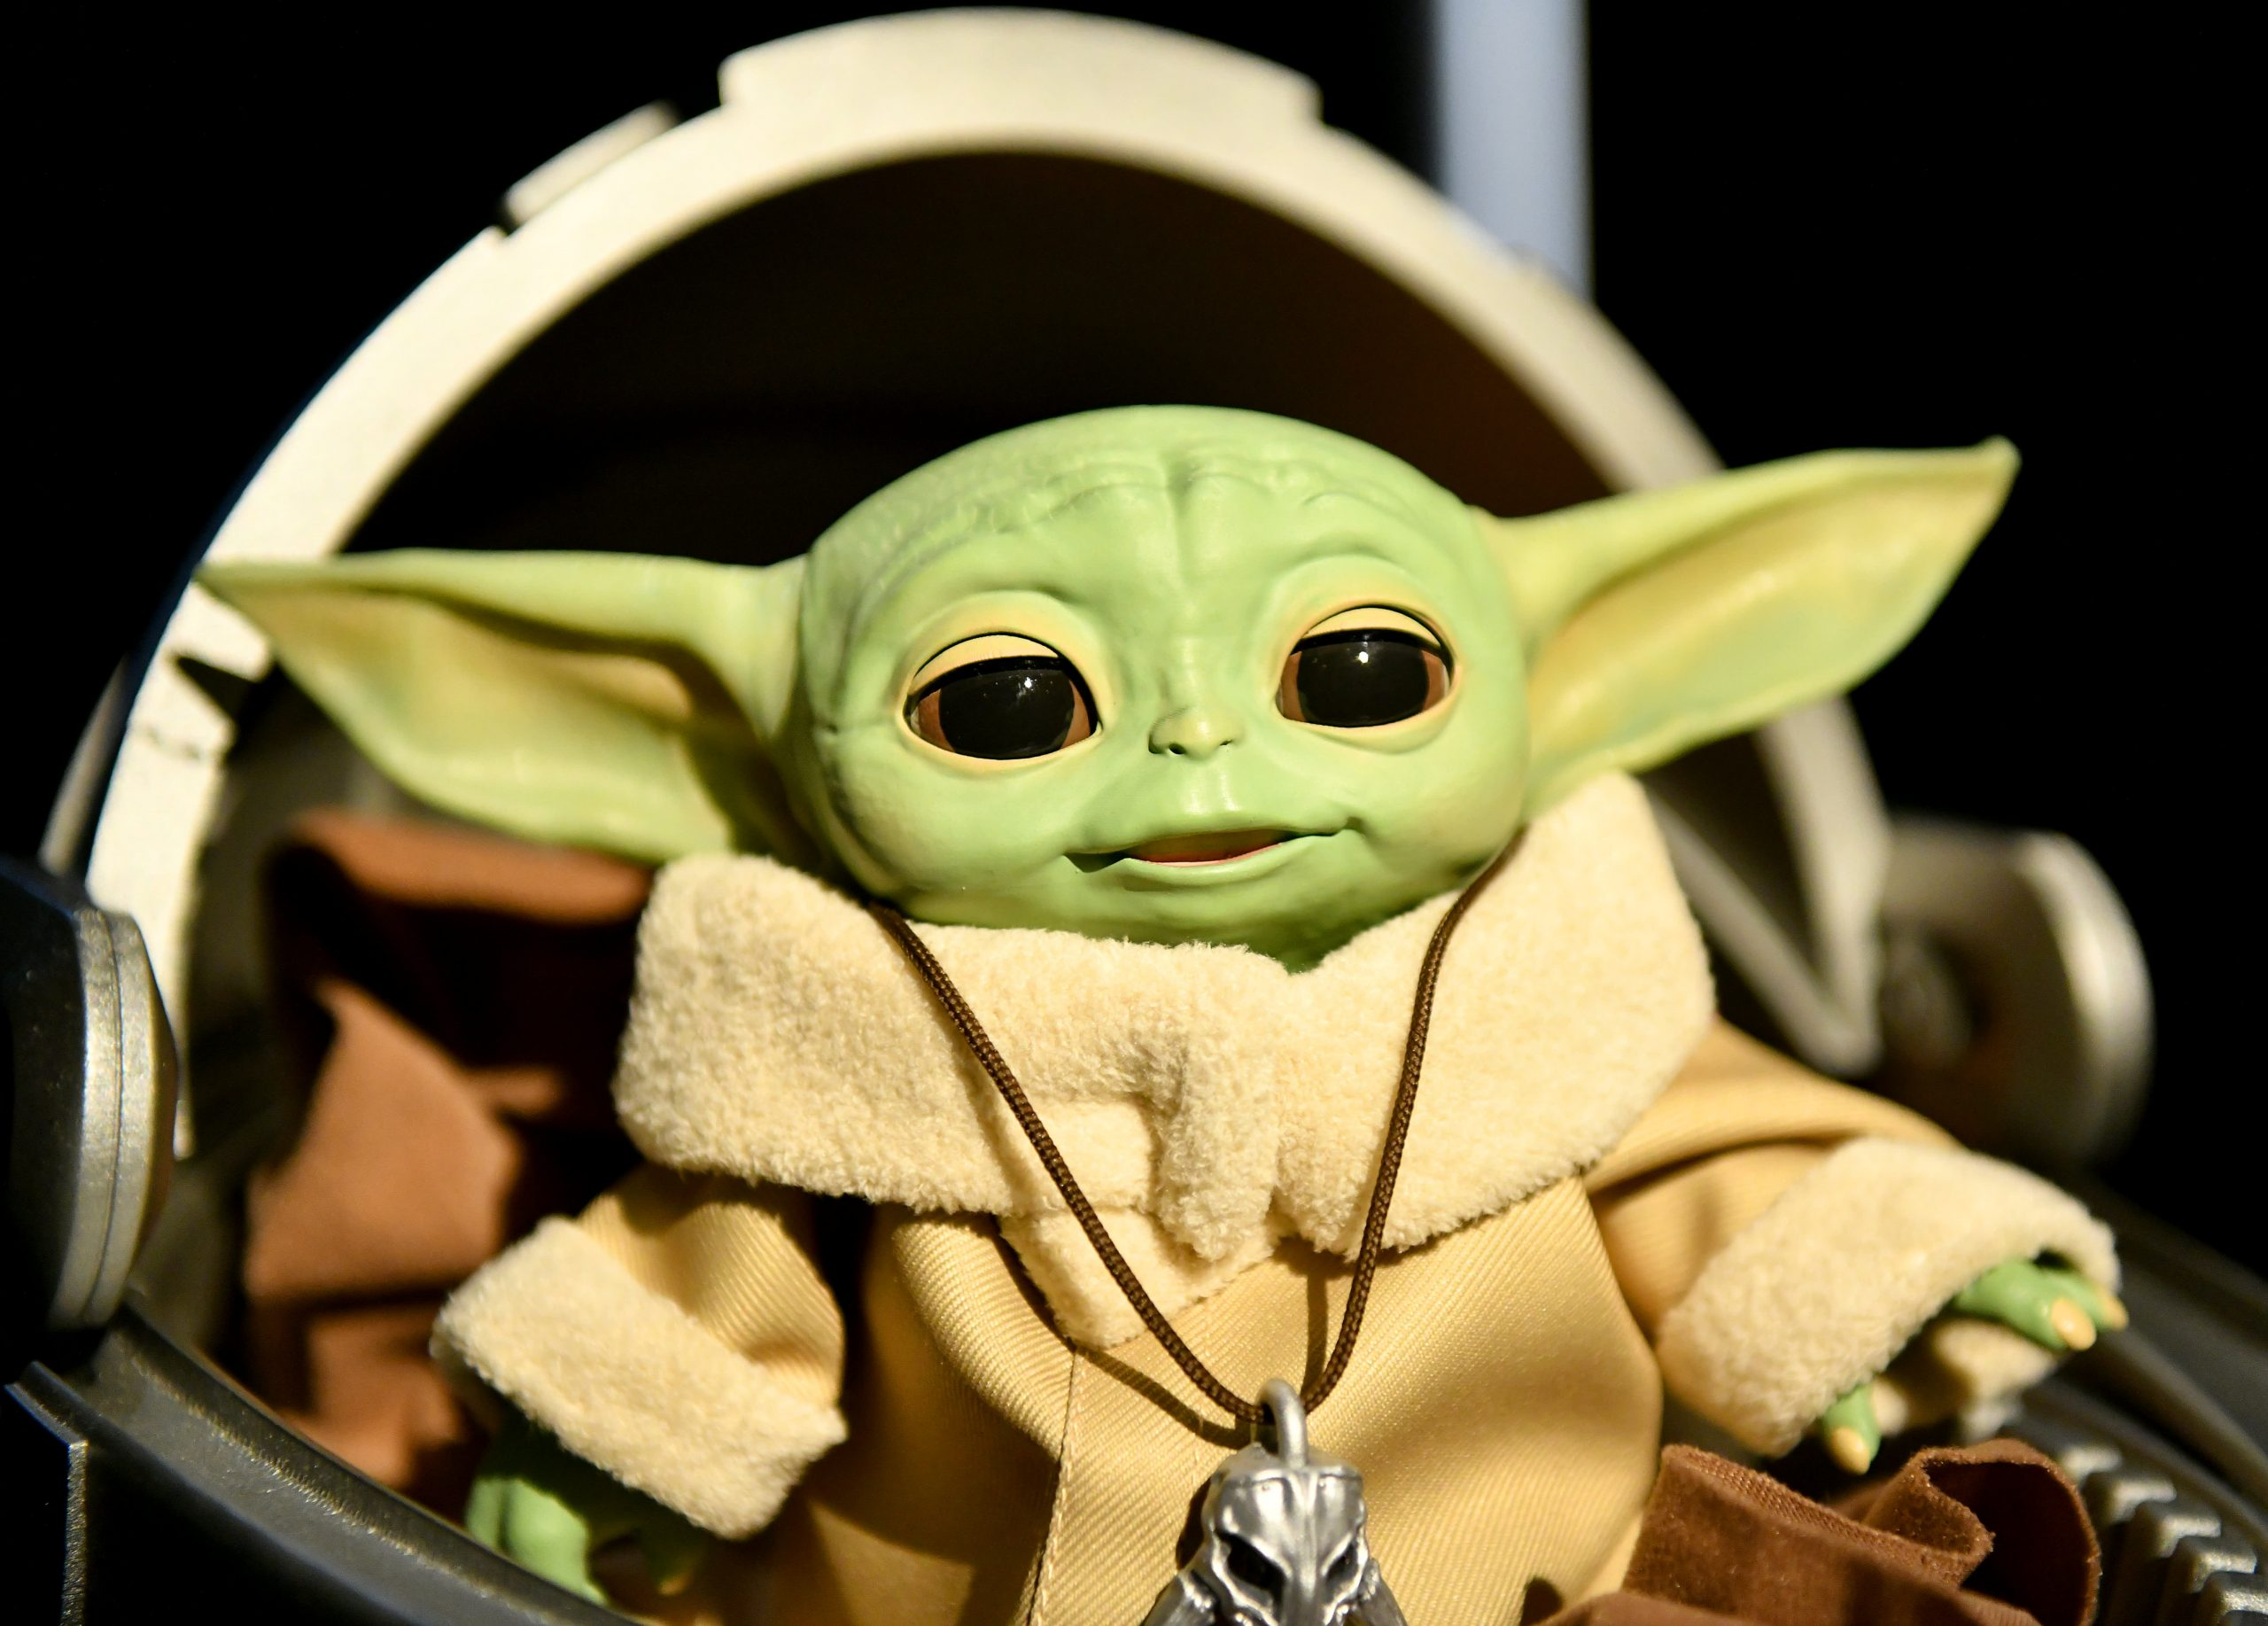 Disney+ will fuel Hasbro gains long after the pandemic is over as Star Wars toy sales jump